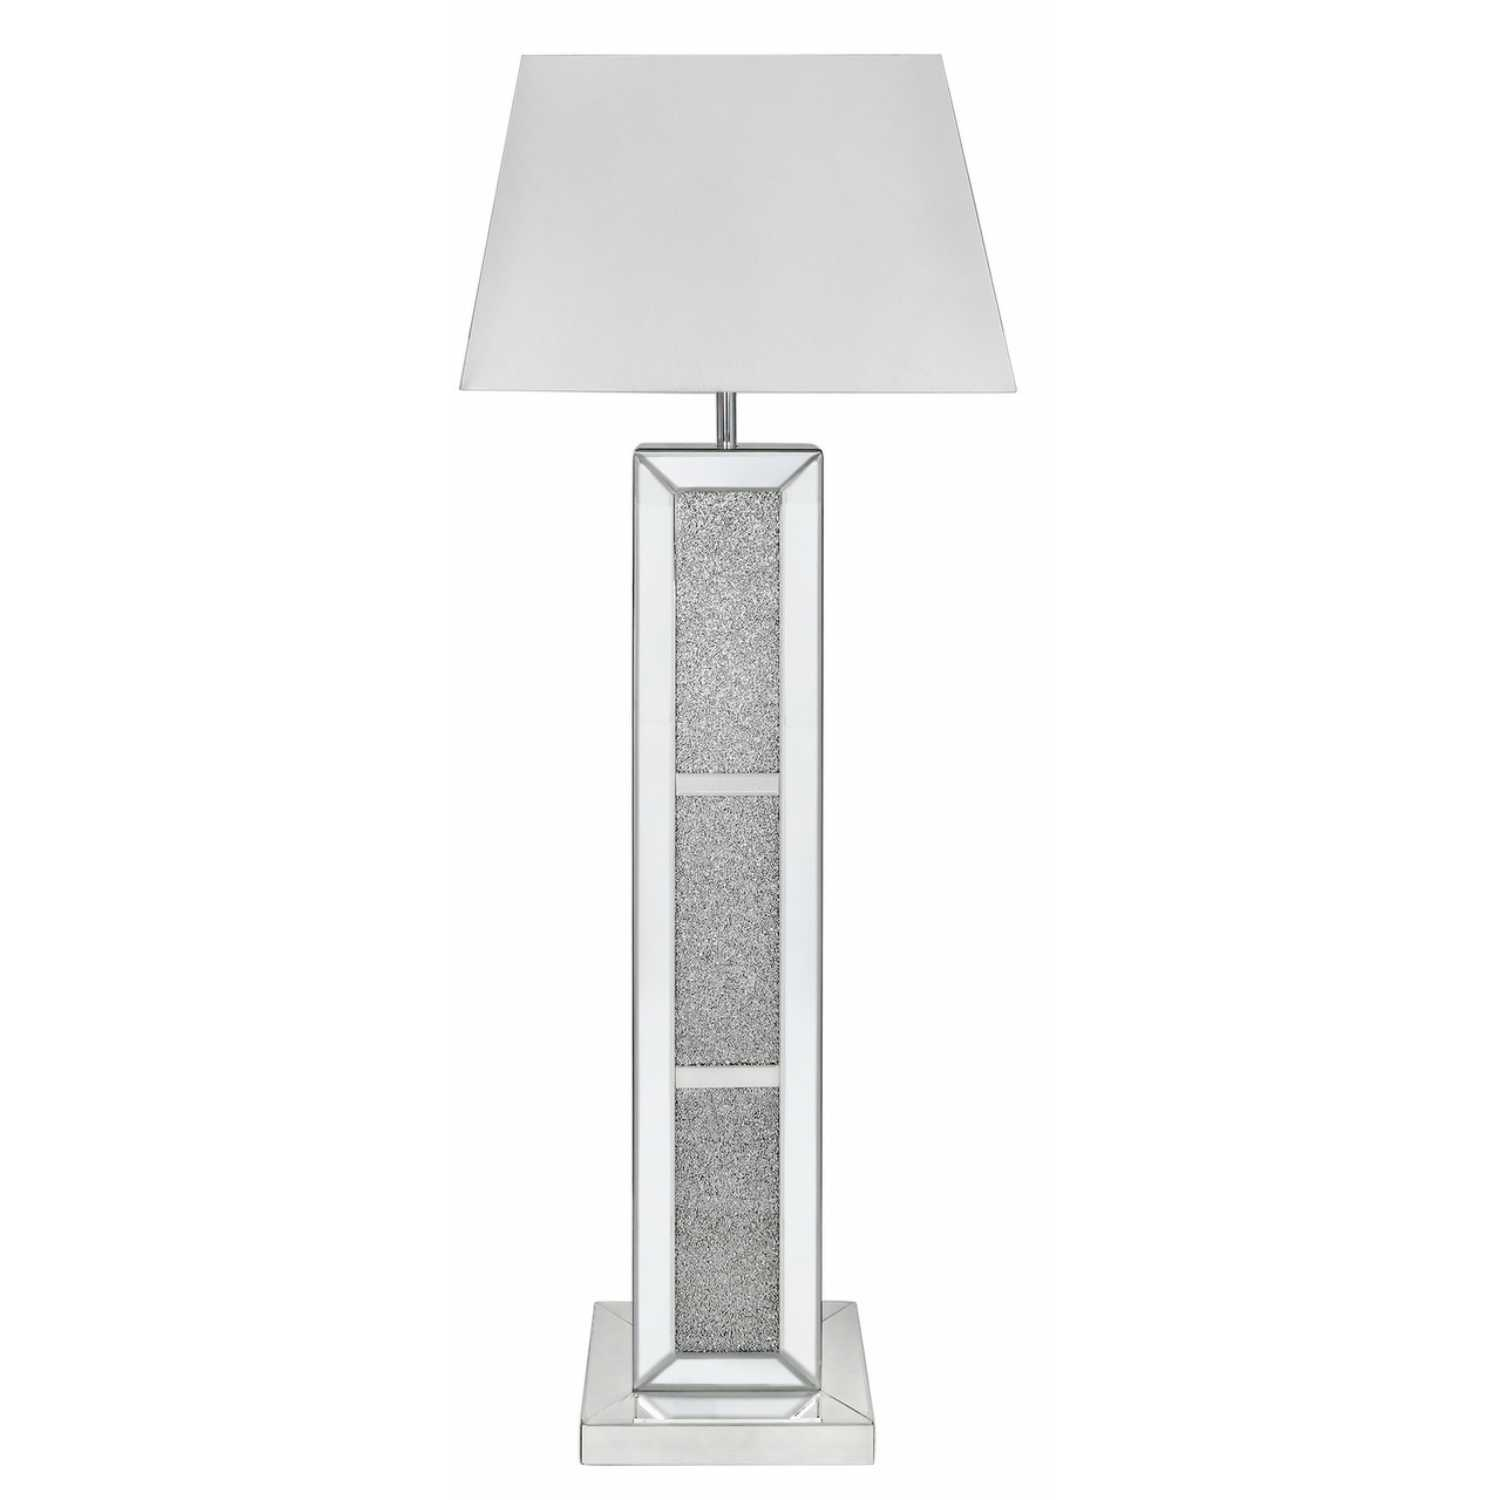 Milano Floor Lamp- Milano Mirror Brick Floor Lamp With White Shade ...